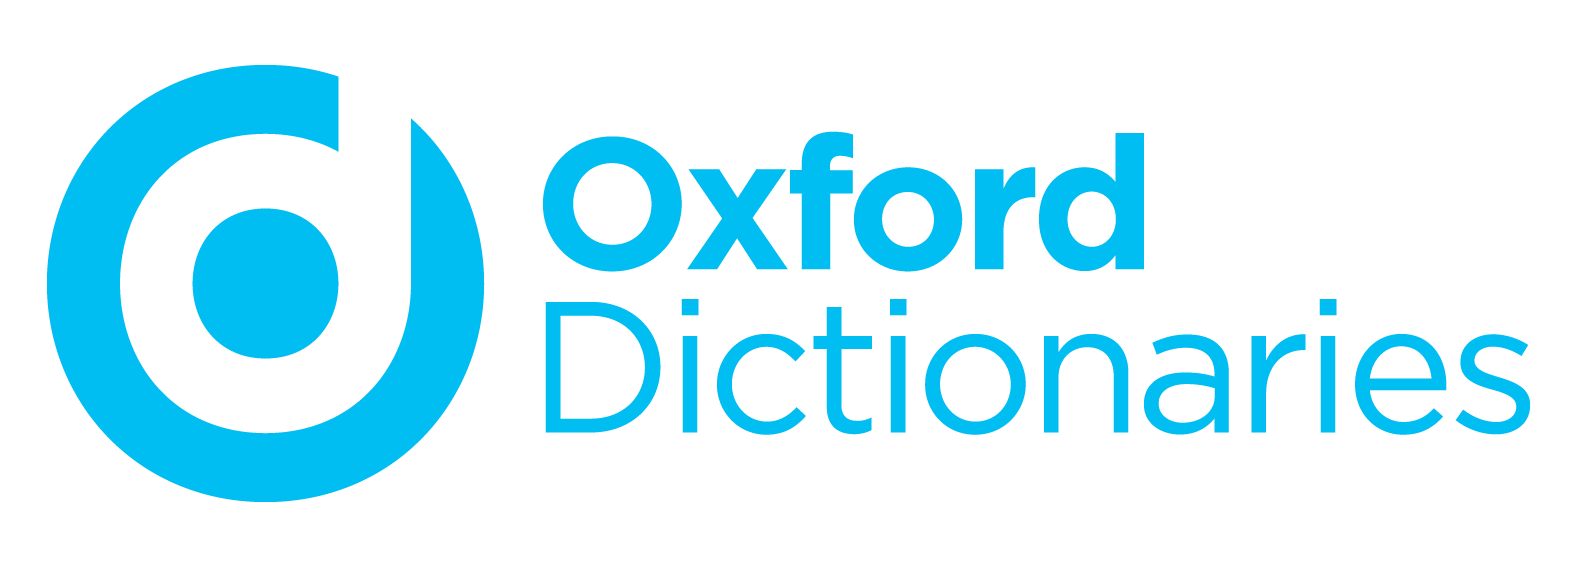 Logos definition english examples. Dictionary clipart oxford dictionary